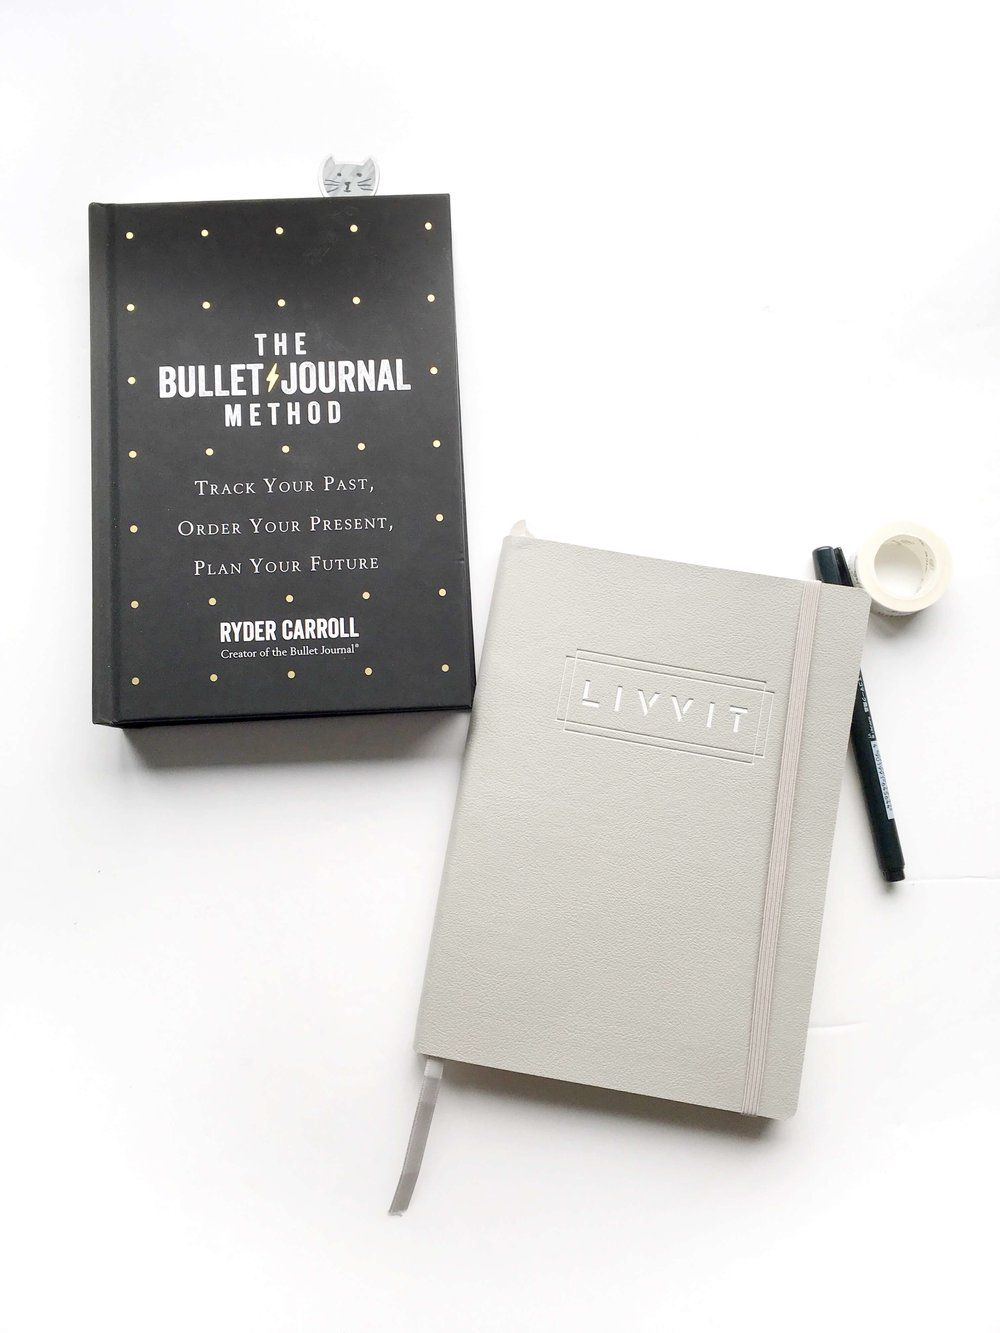 book and planner.jpg